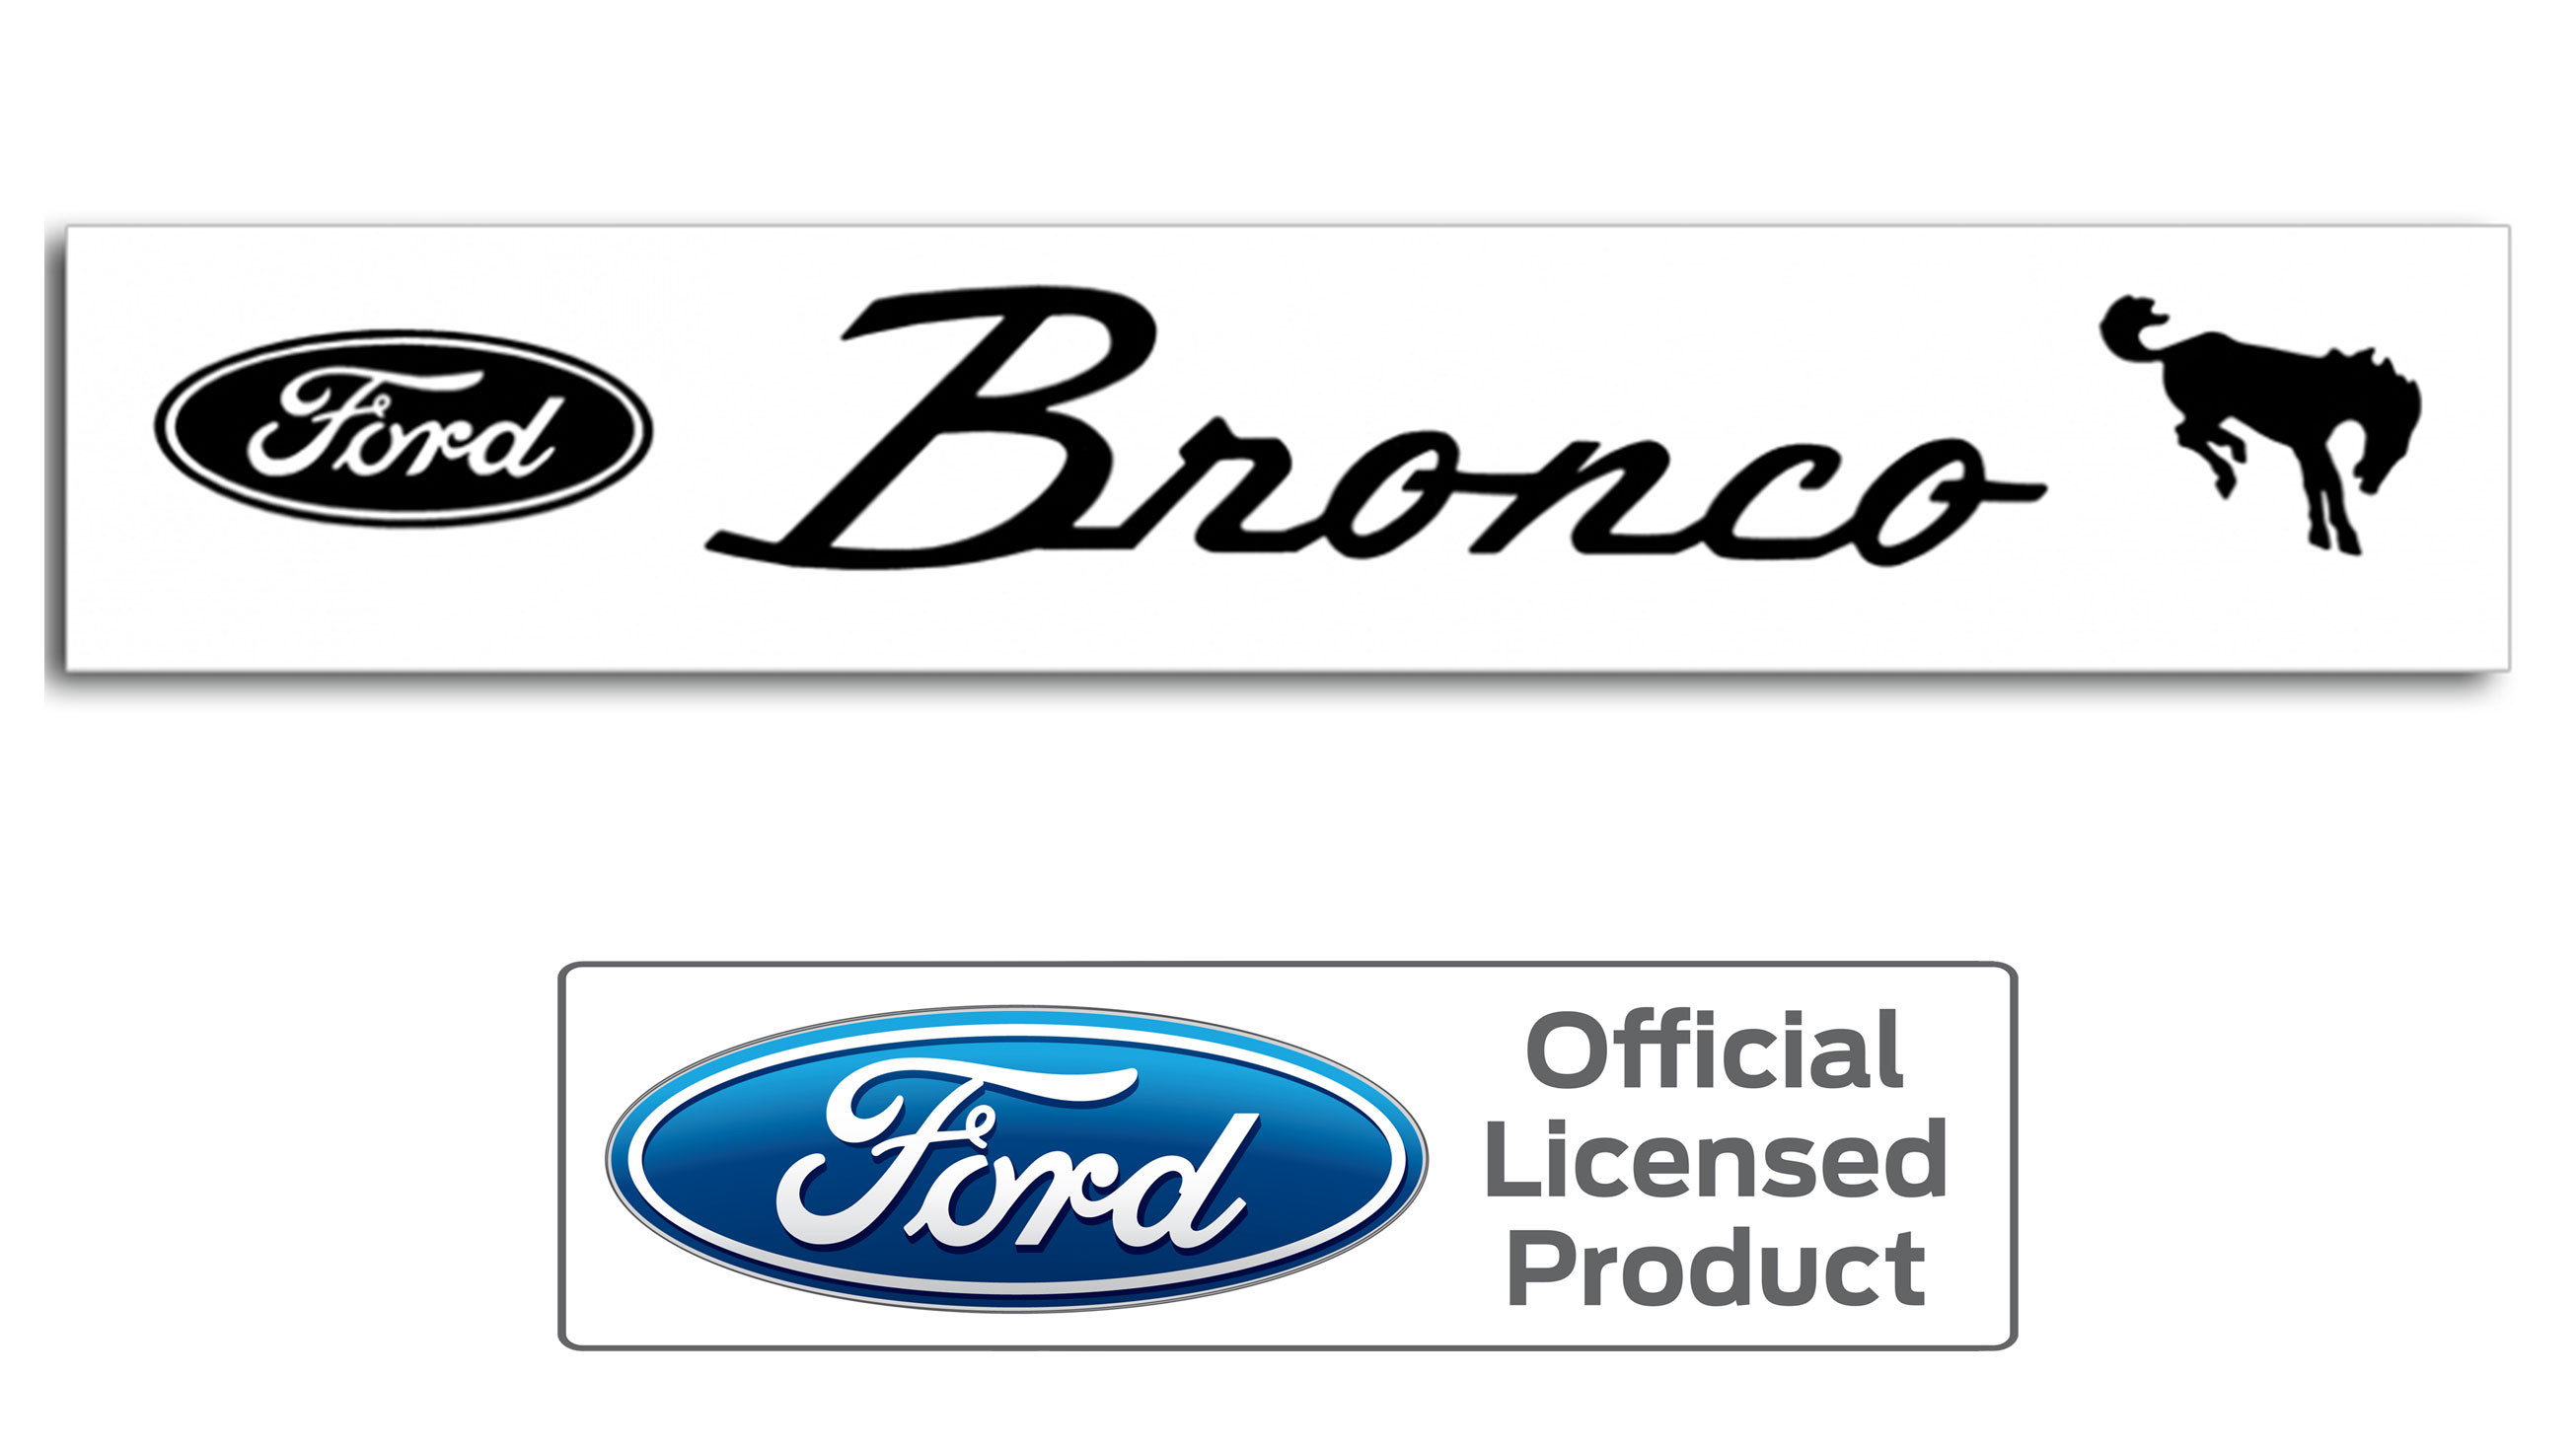 Emblems Stickers Toms Bronco Parts 1966 Ford Wiring Harness Windshield Decal W Oval Script Various Colors